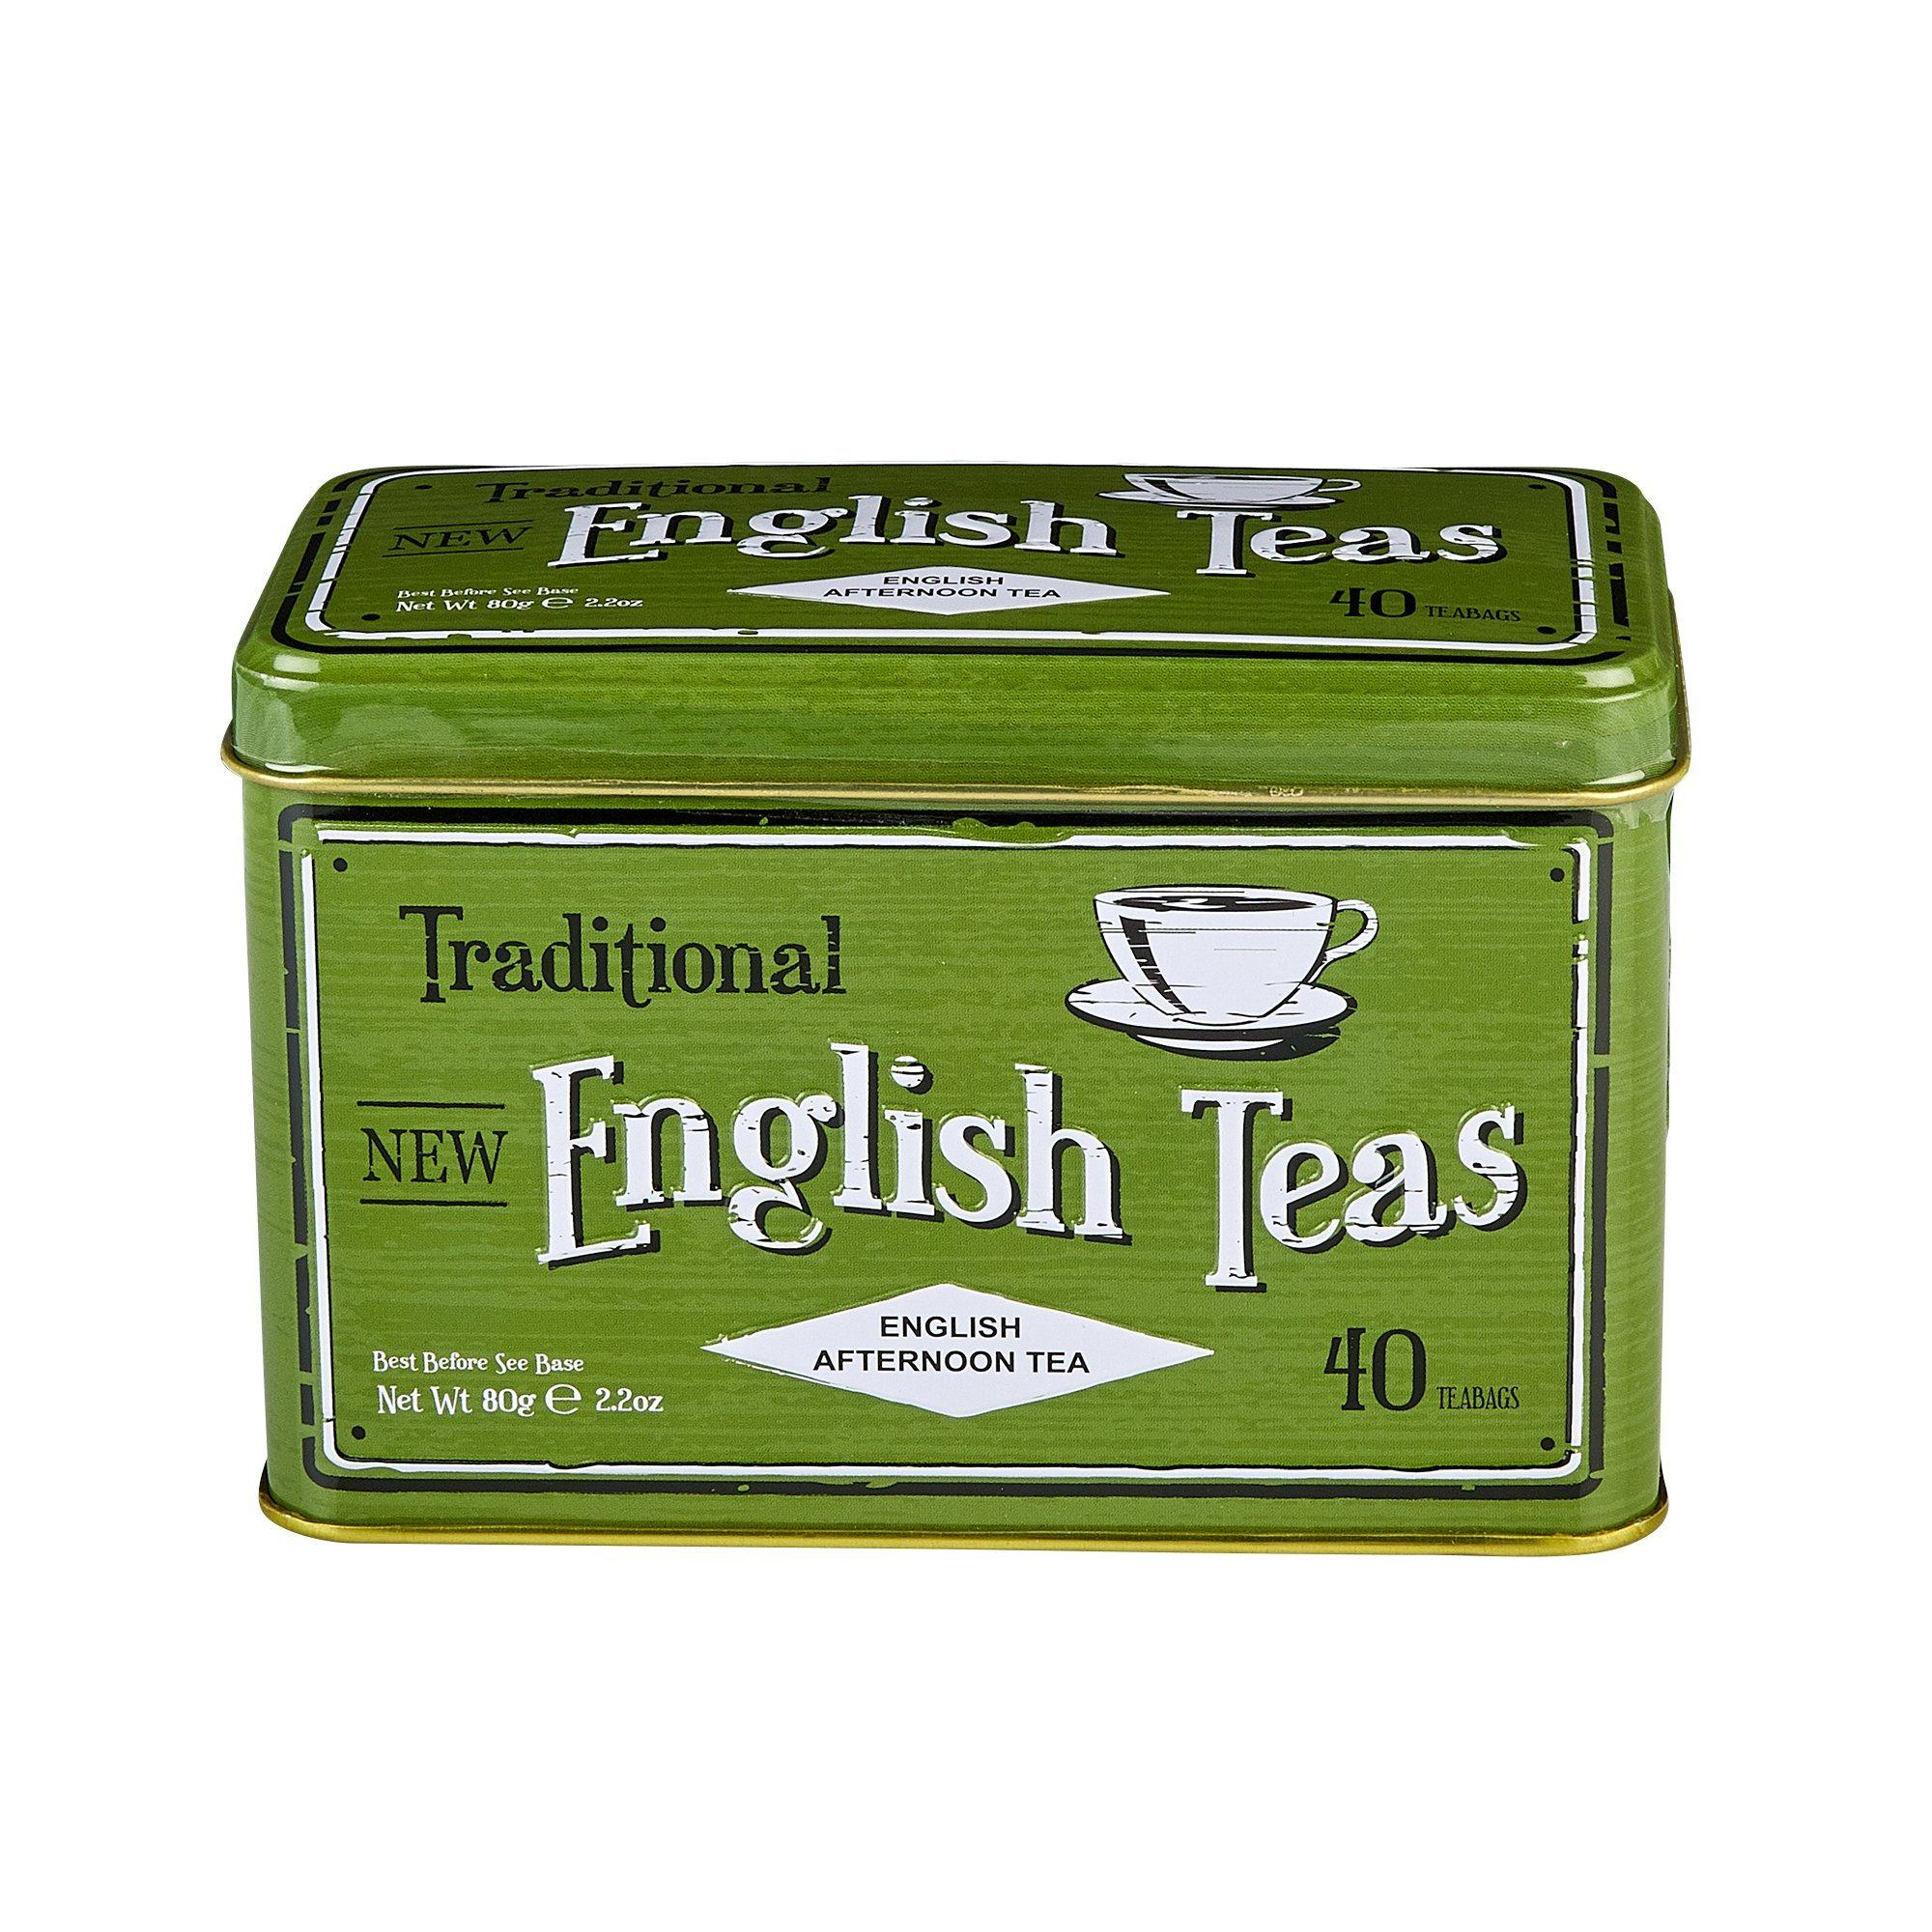 Vintage Selection English Afternoon Tea Tin 40 Teabags Black Tea New English Teas